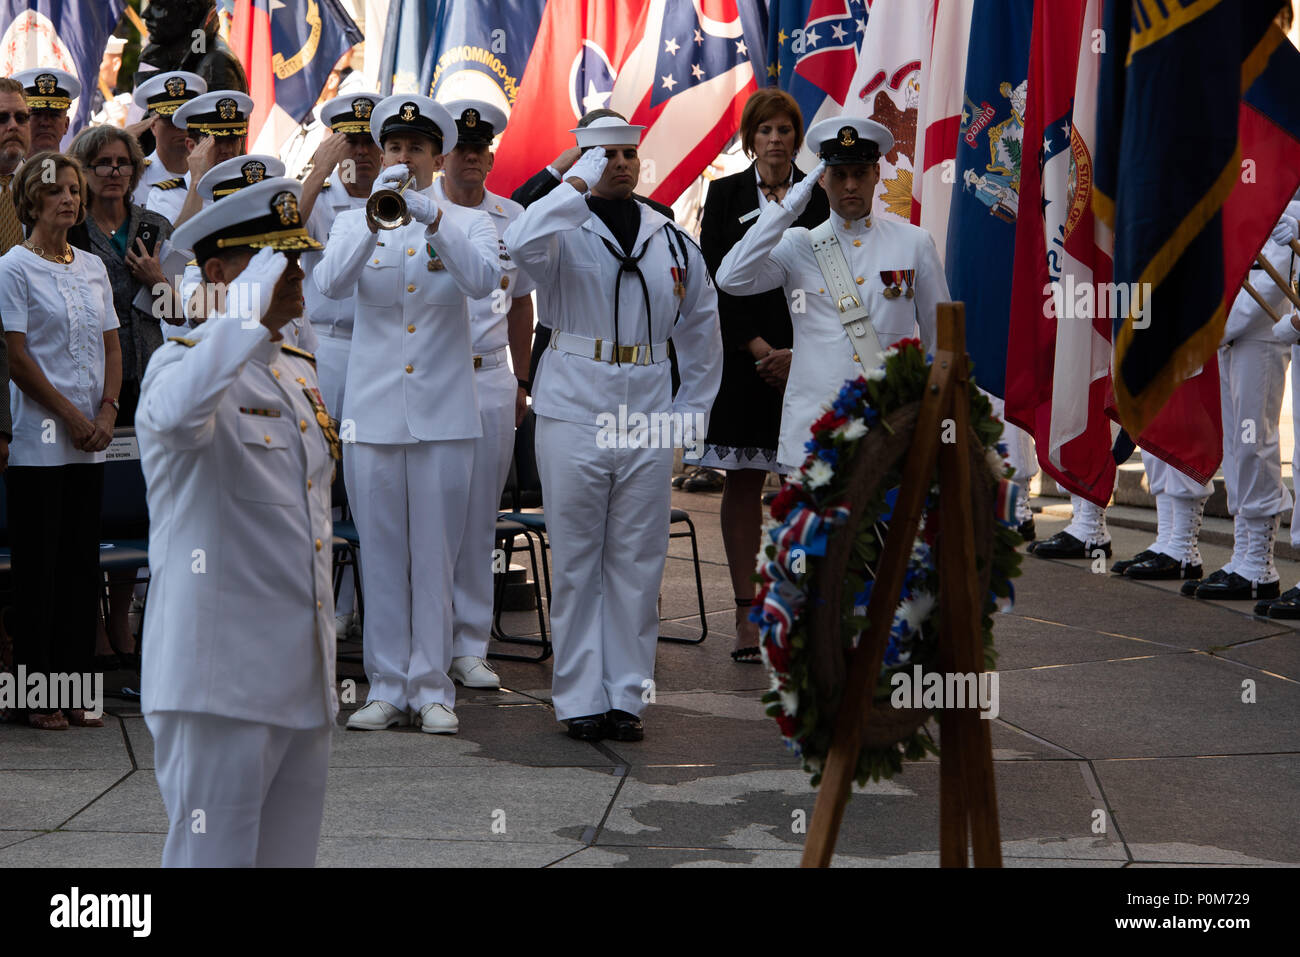 180605-N-HG258-1101 WASHINGTON (June 5, 2018) The Vice Chief of Naval Operations, Adm. Bill Moran lays a wreath at the U.S. Navy Memorial in Washington, D.C., during the commemoration of the 76th anniversary of the Battle of Midway. The Battle of Midway began on June 4 in 1942 and stands as one of the U.S. Navy's most historically significant naval battles. Fought on the high seas of the Pacific more than half a century ago, this battle altered the course of the war in the Pacific and thereby shaped the outcome of world events. (U.S. Navy photo by Senior Chief Musician Stephen Hassay/Released) - Stock Image